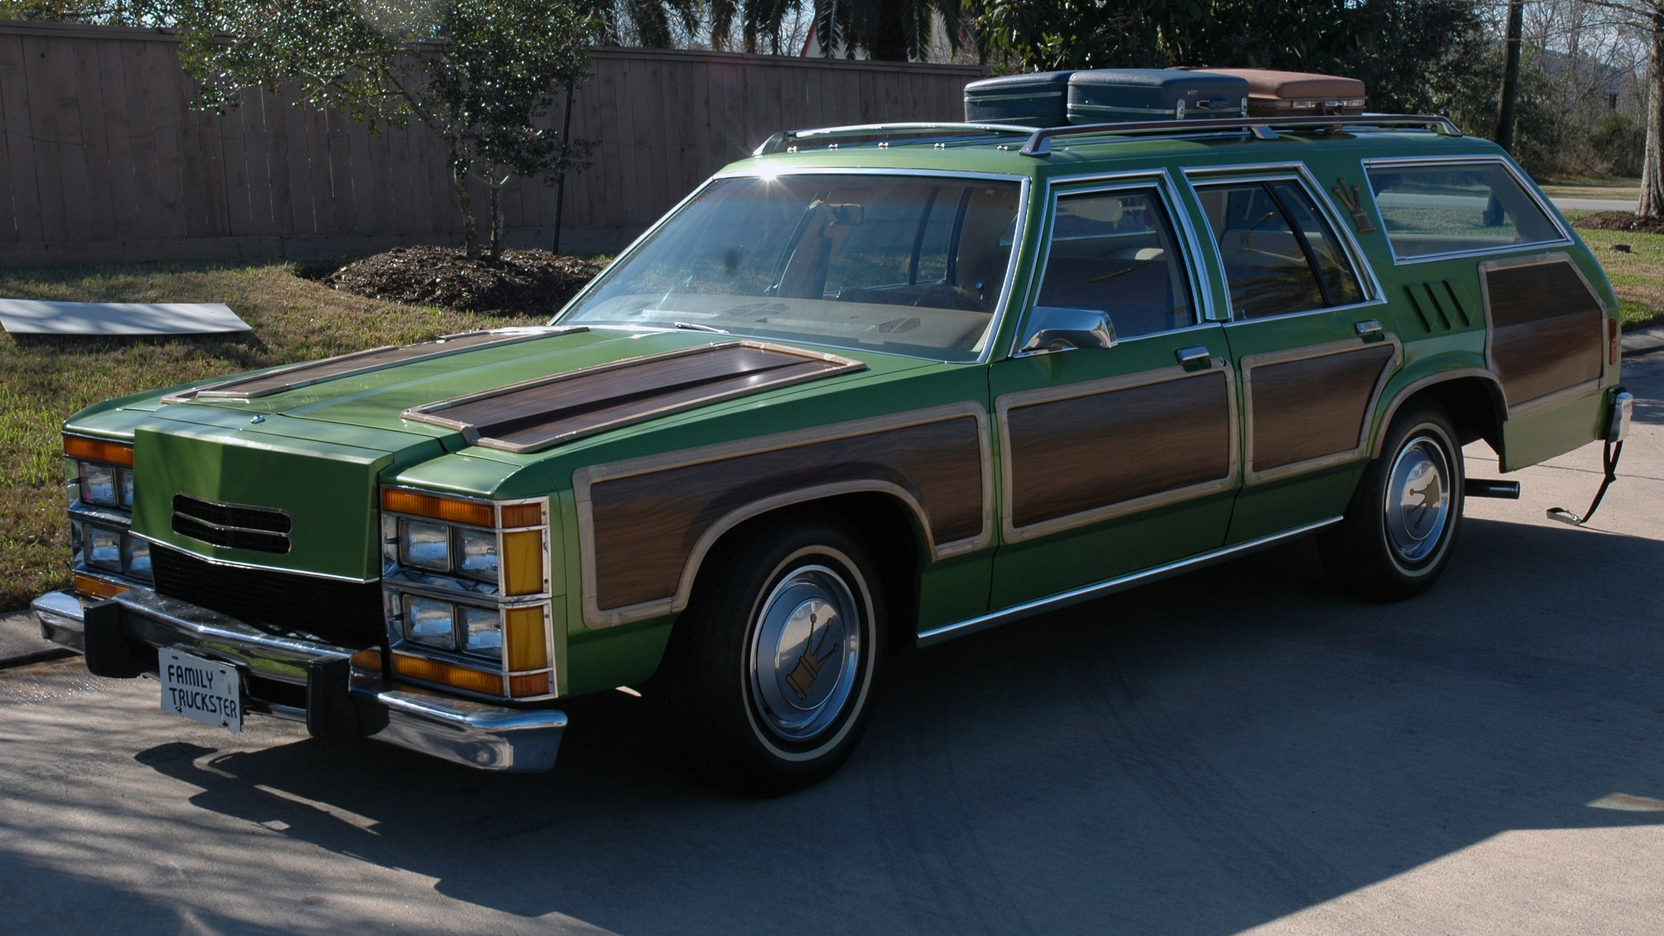 National Lampoon's Family Vacation Wagon Queen Family Truckster front 3/4